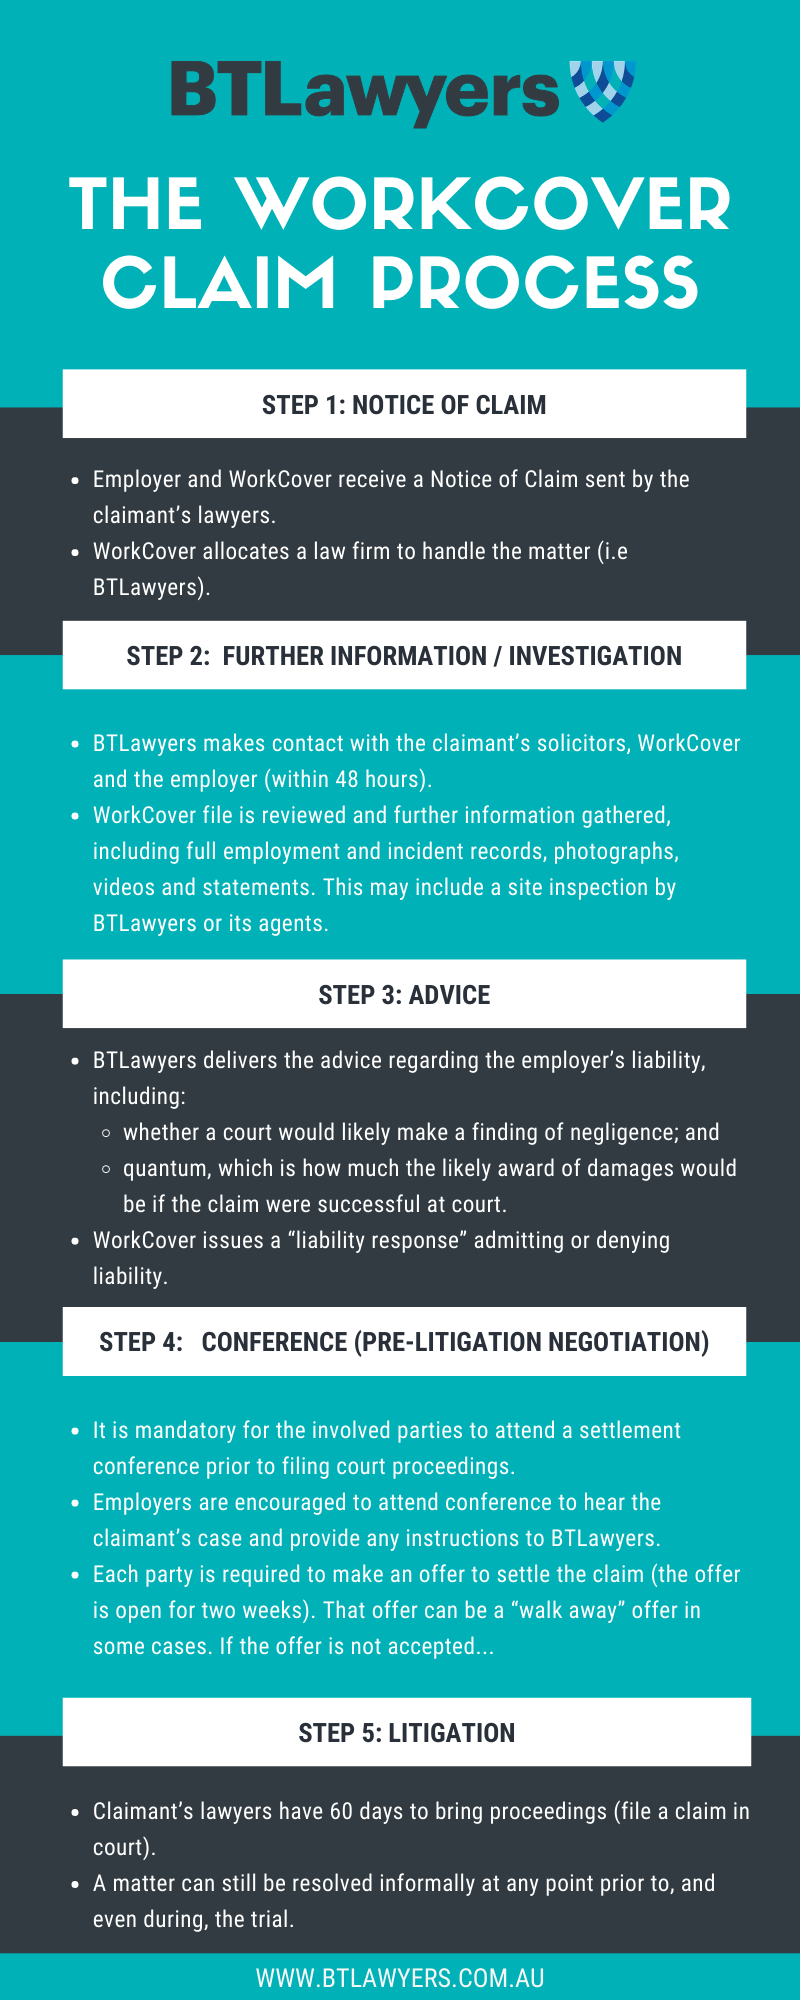 BTLawyers - Workcover Claim Process - Infographic